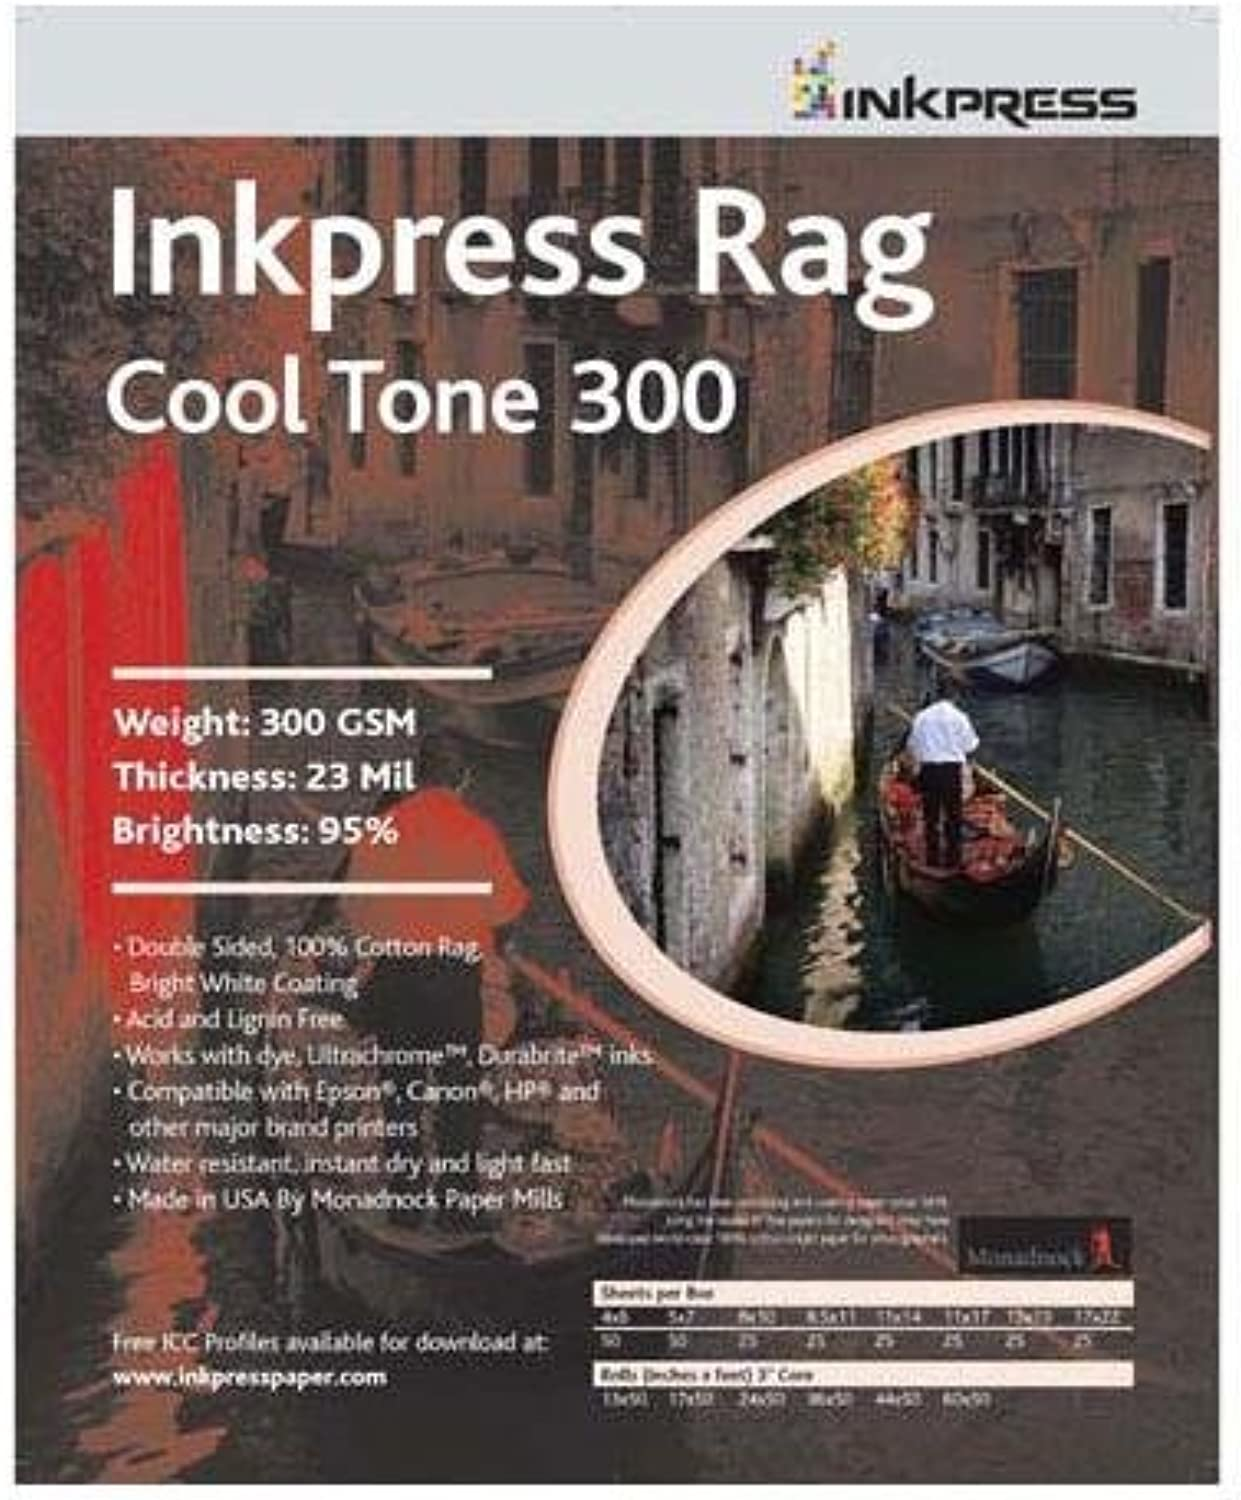 Inkpress Rag, Cool Tone Double Sided, Bright White Matte Inkjet Paper, 24 mil., 300gsm, 13x19 , 25 Sheets